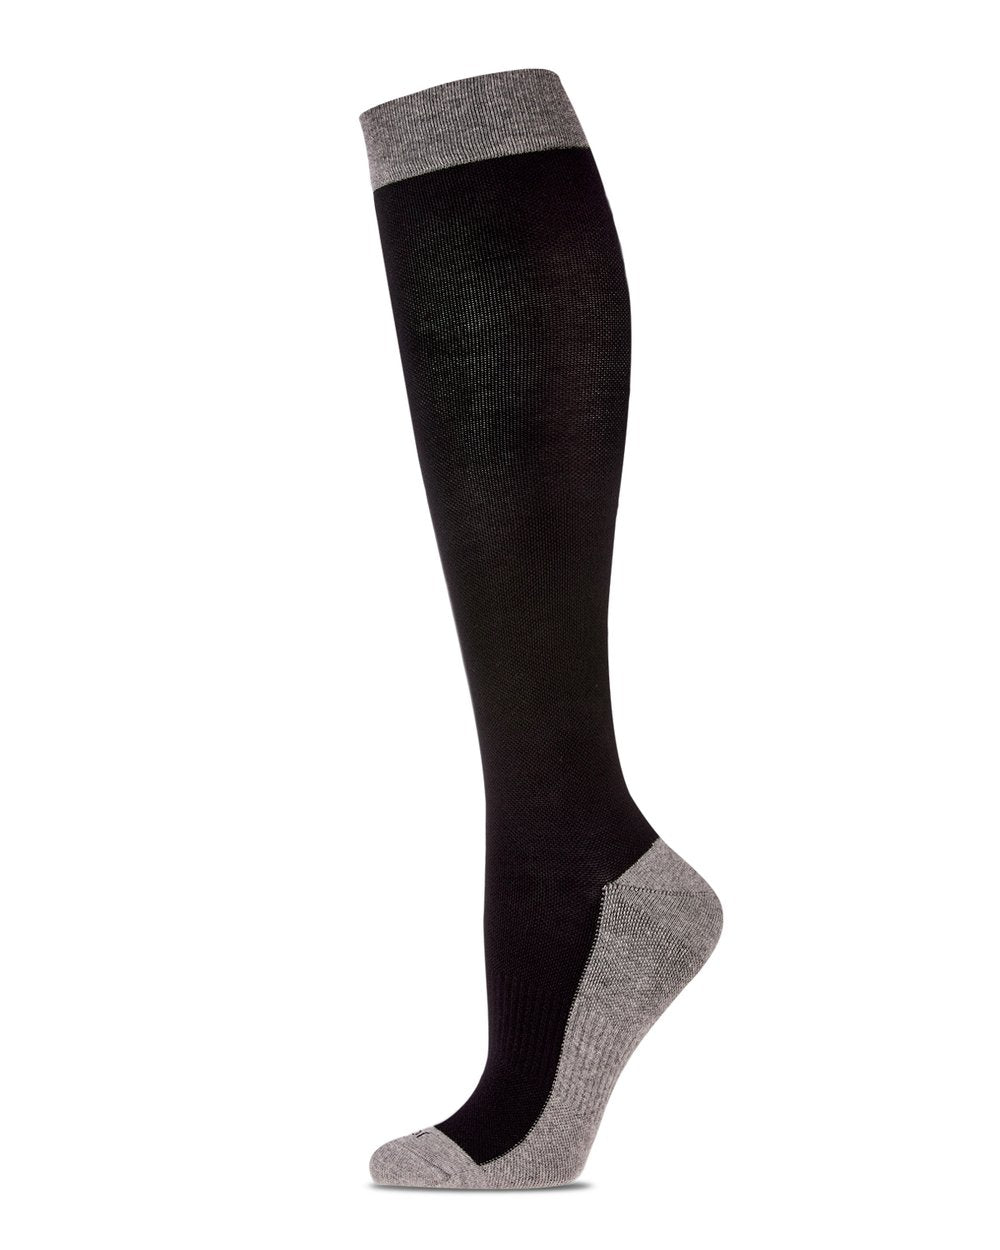 Two Tone Contrast Compression Socks